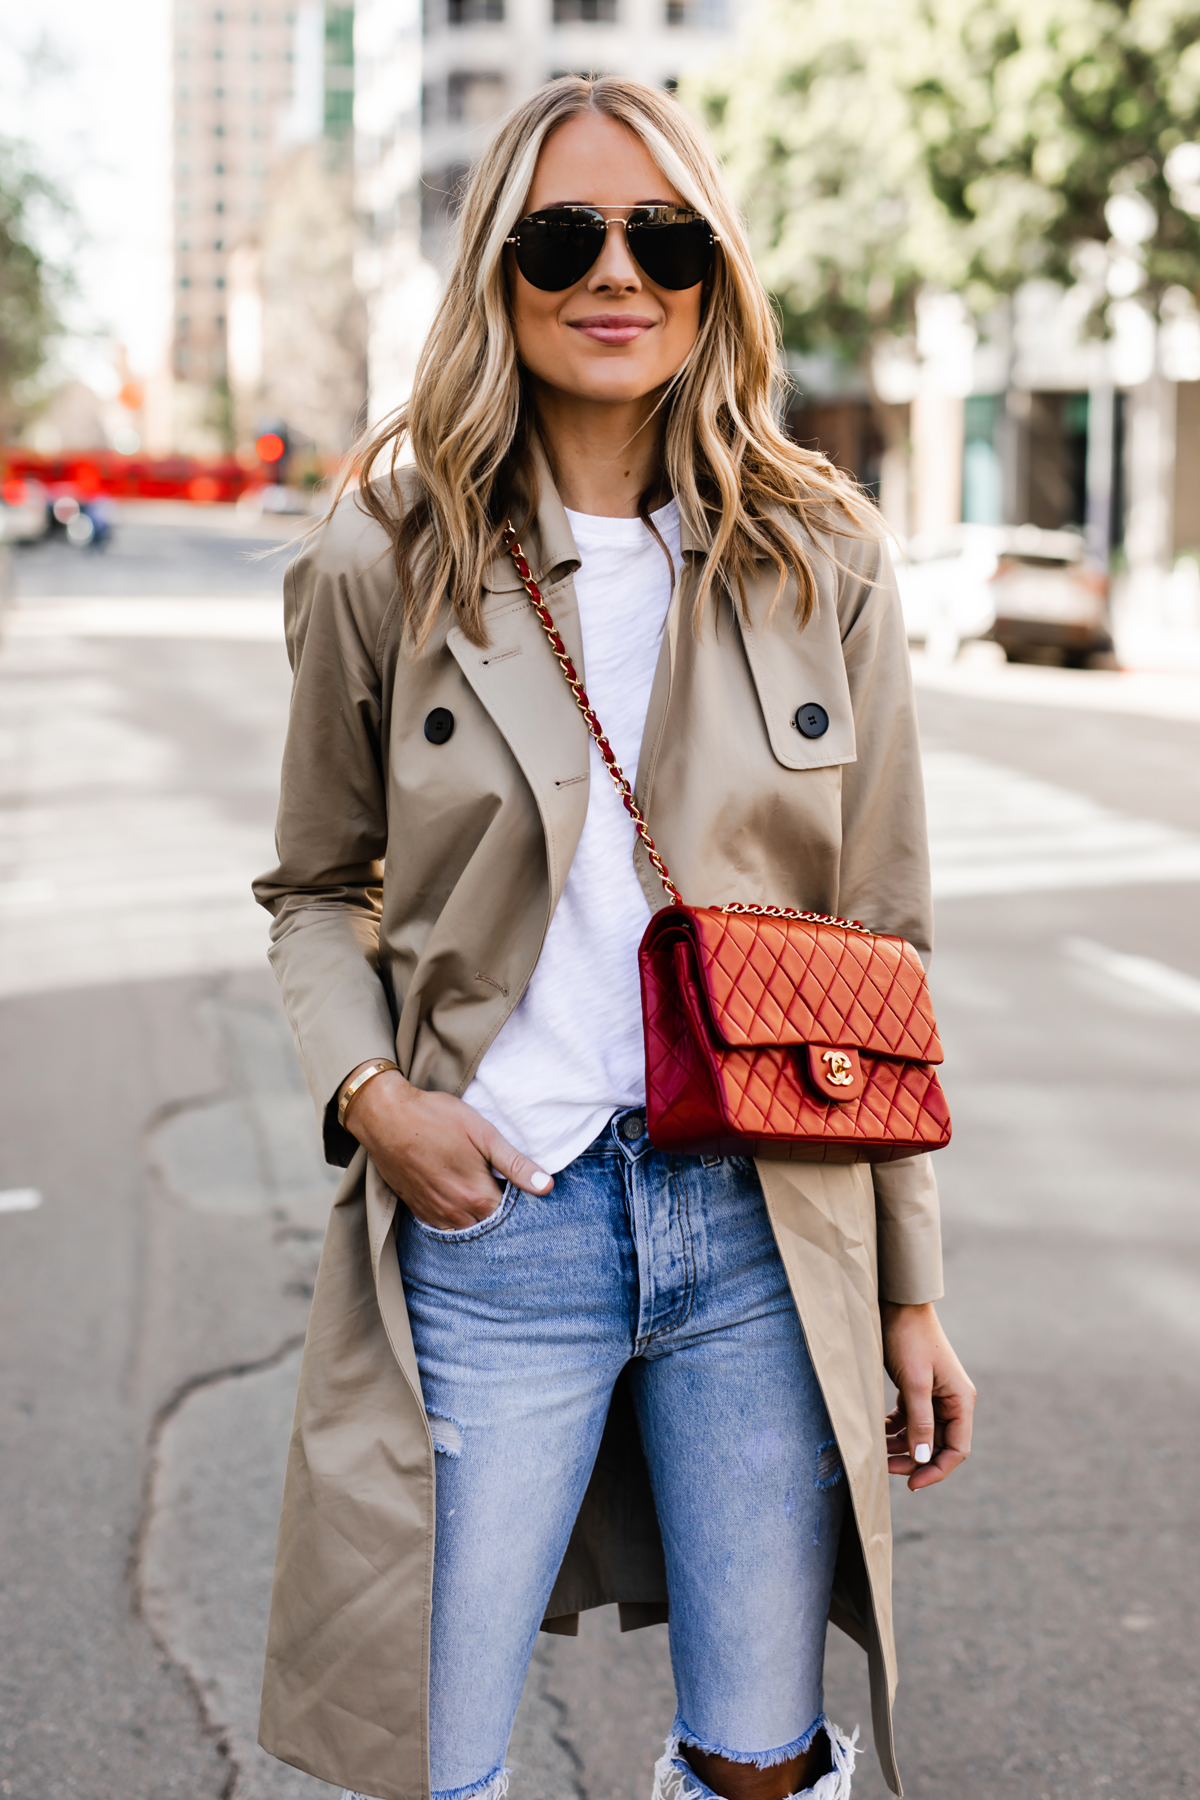 Blonde Woman Wearing Everlane Trench Coat White Tshirt Red Chanel Handbag Ripped Jeans Fashion Jackson San Diego Fashion Blogger Street Style